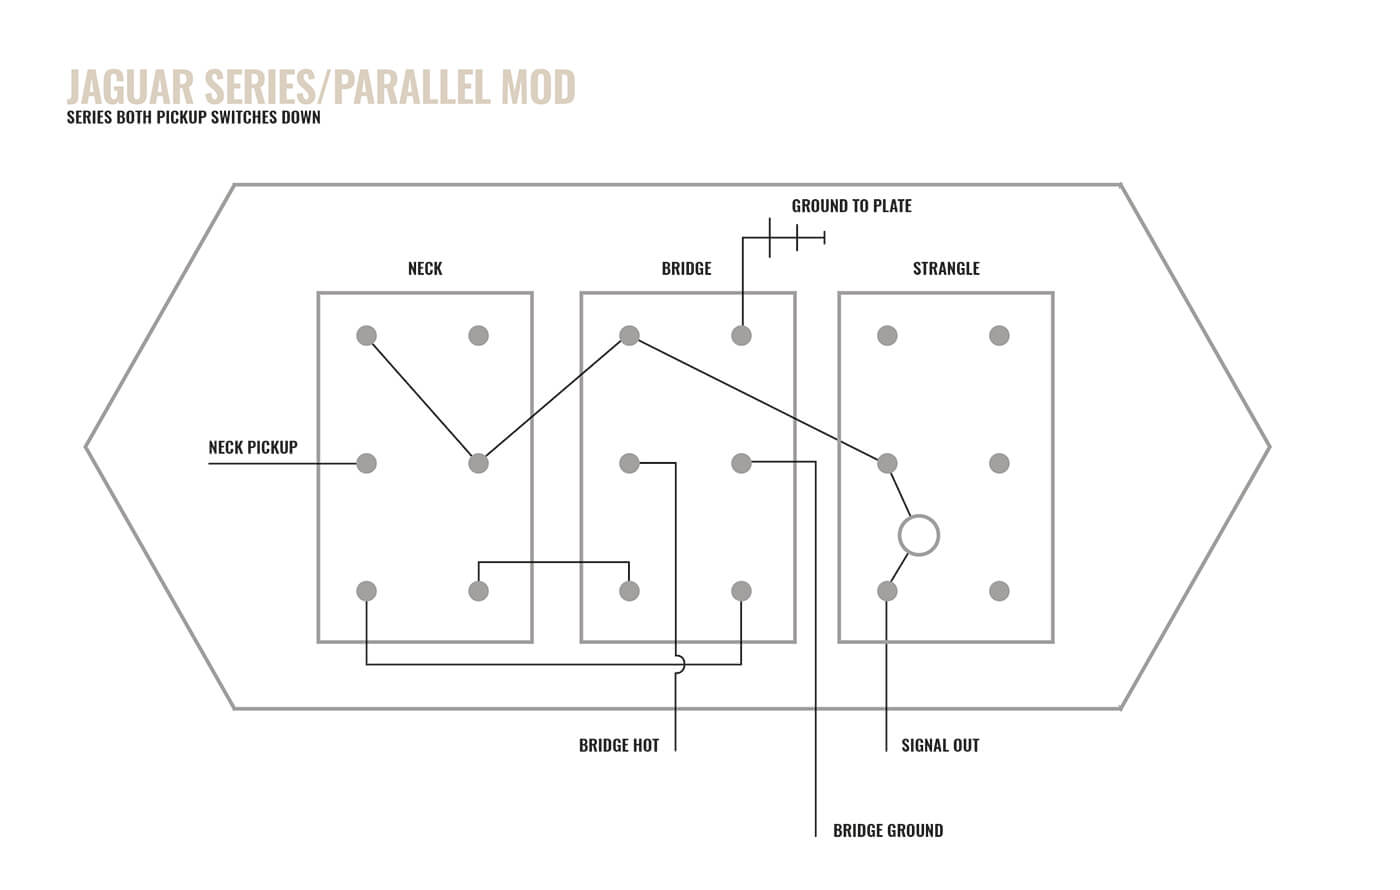 Fender Jaguar Wiring Mods - Wiring Diagram & Cable Management on